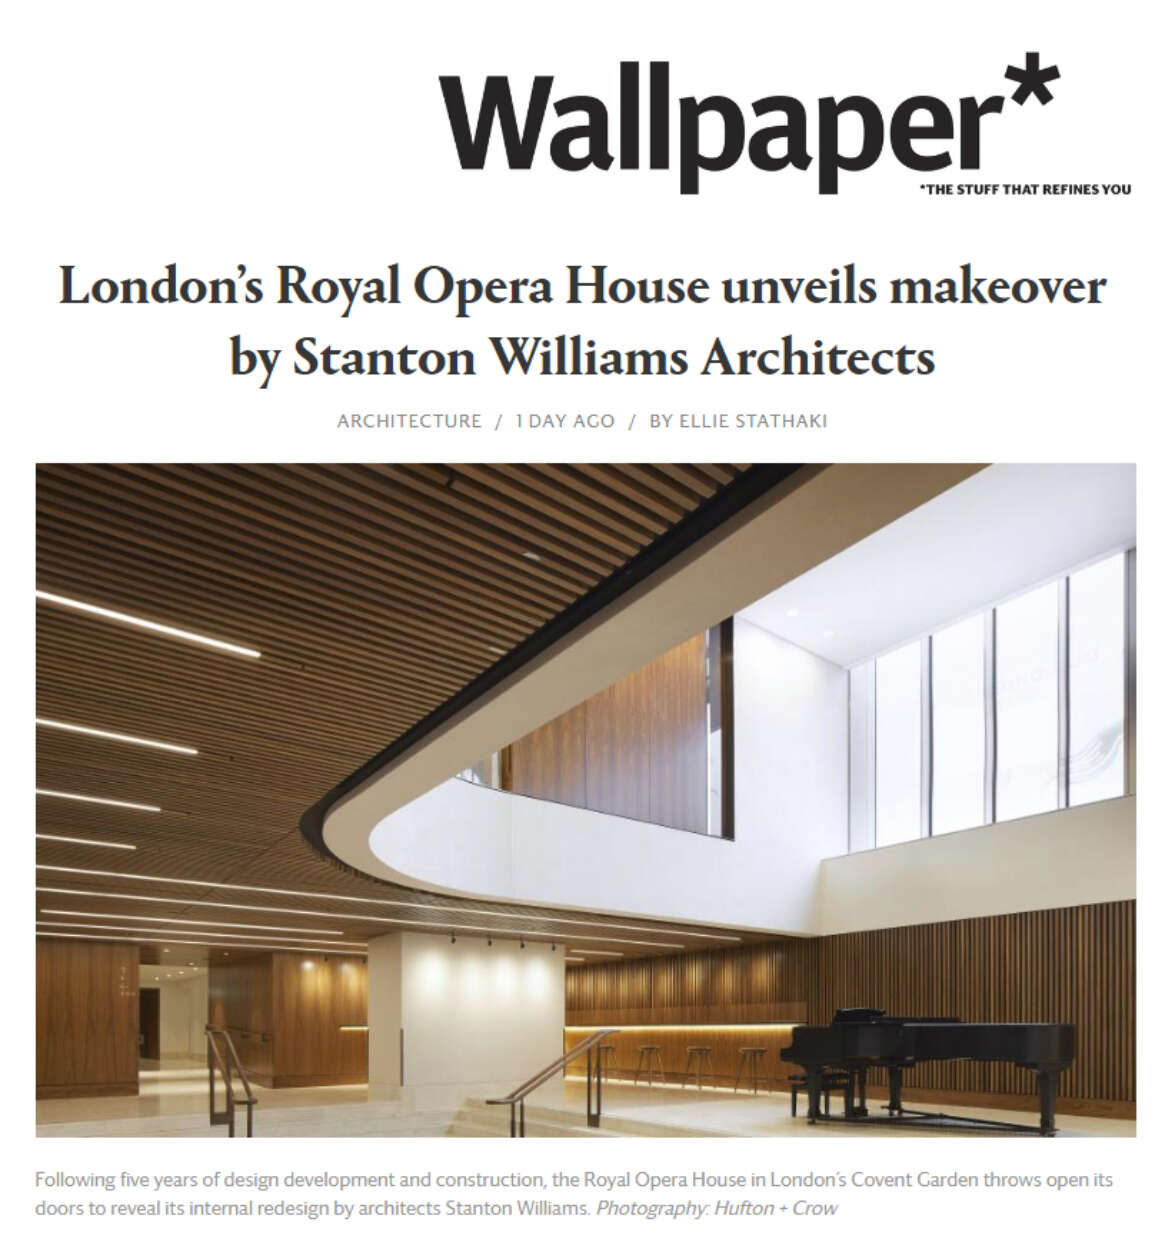 Wallpaper features The Royal Opera House transformation